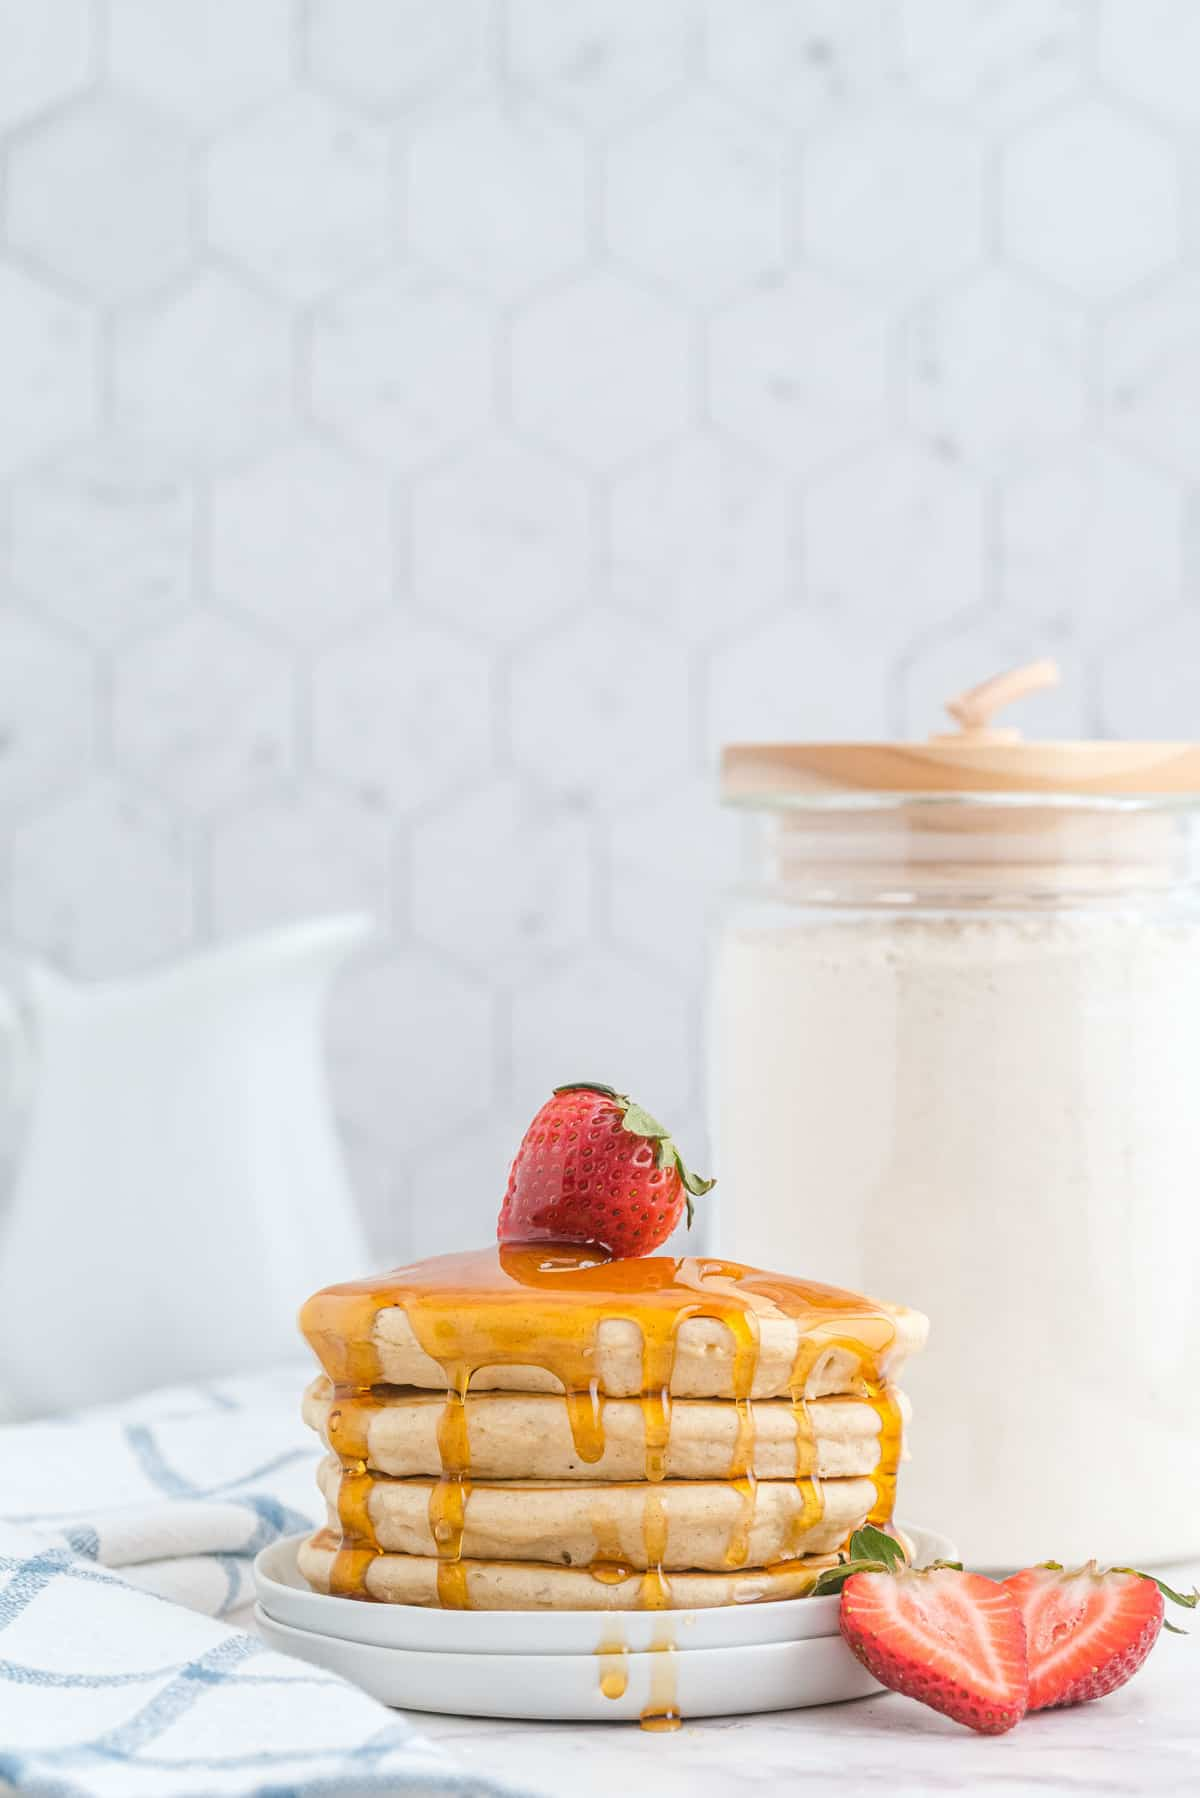 Stack of pancakes with syrup and strawberries, a canister of pancake mix in the background.